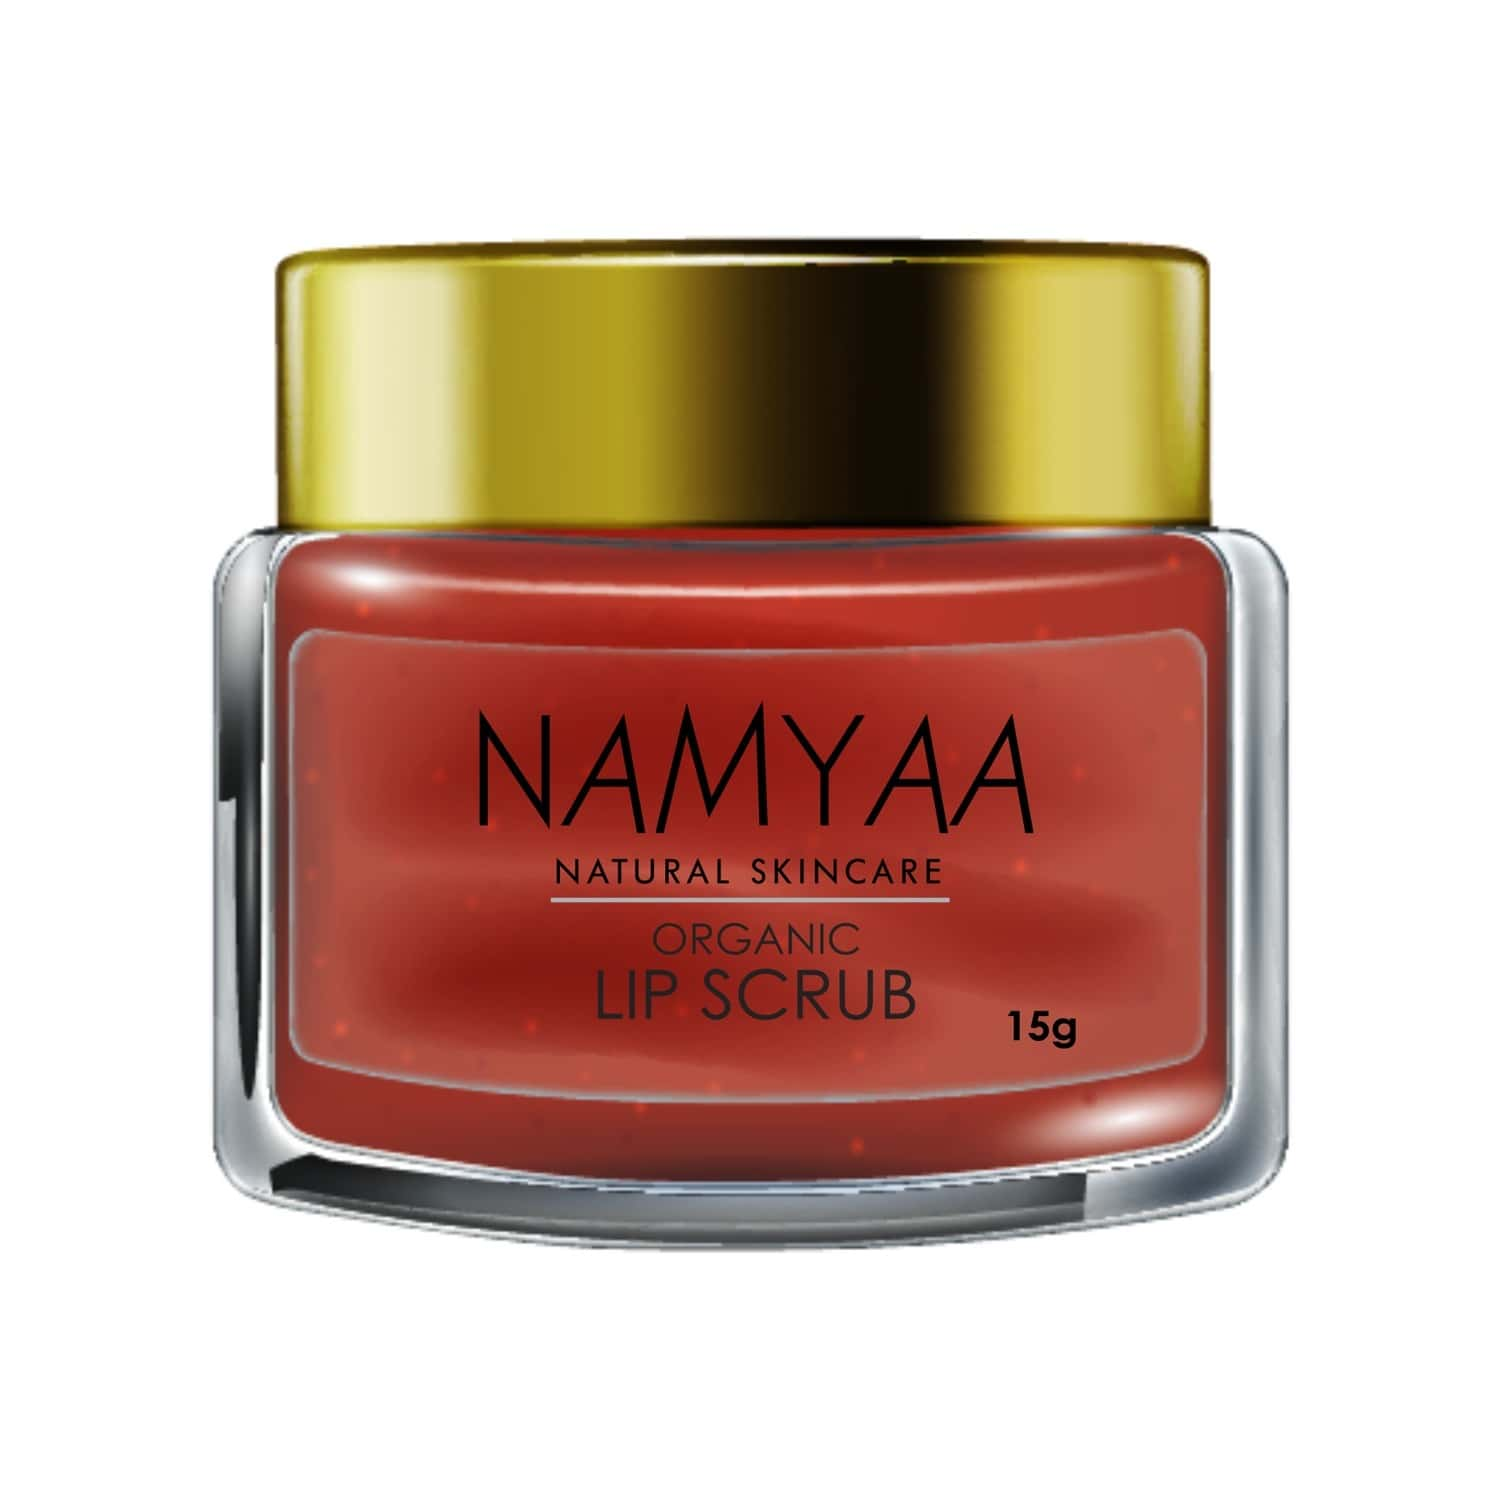 Namyaa Organic Lip Scrub, Coconut, Glycerin And Other Natural Ingredients, Softens Smooth Exfoliates Lips - 15 G